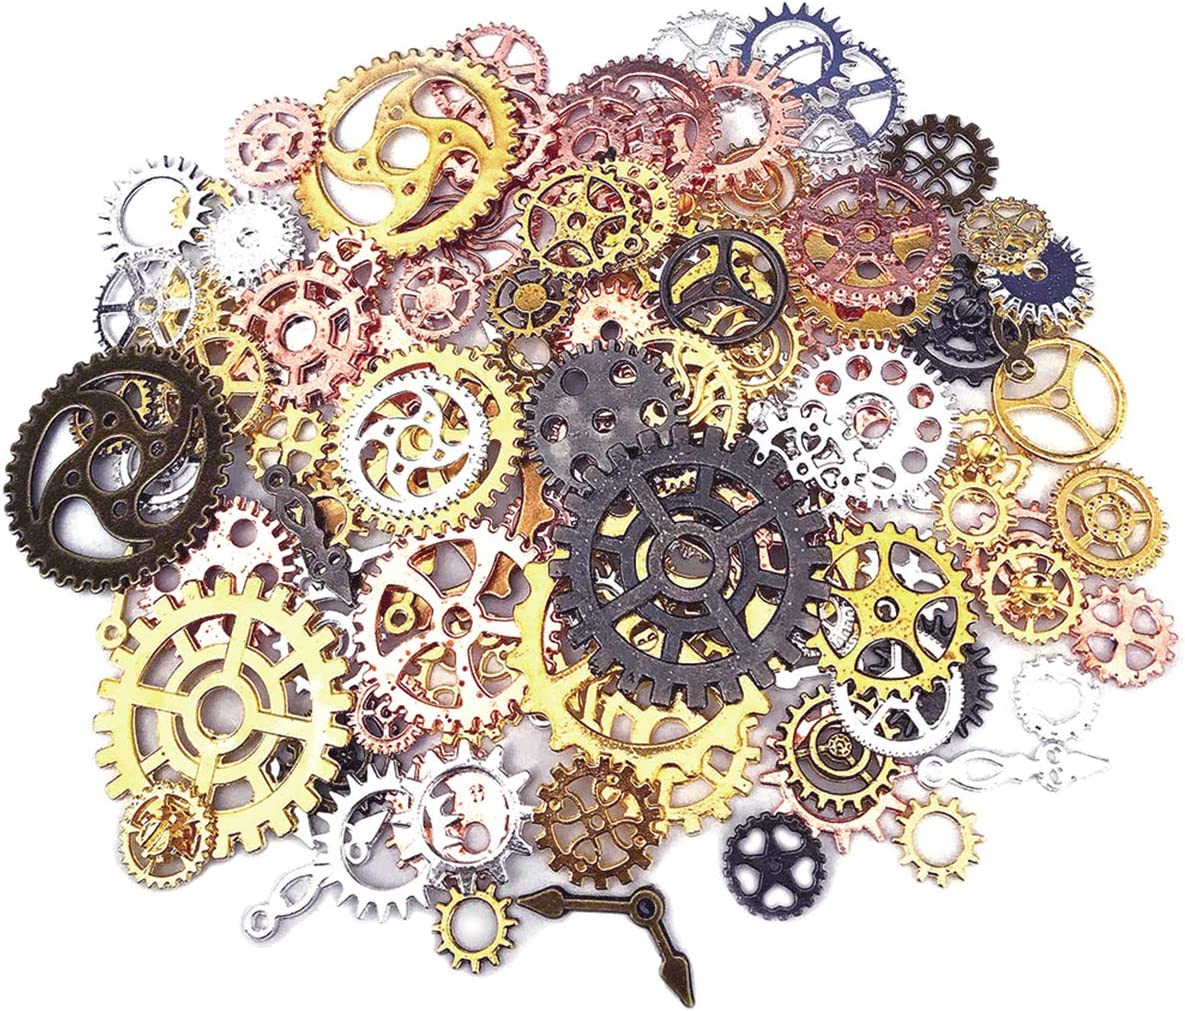 200 Gram Antique Metal Quality inspection Max 76% OFF Steampunk Pendant Charms Clock Gears DIY